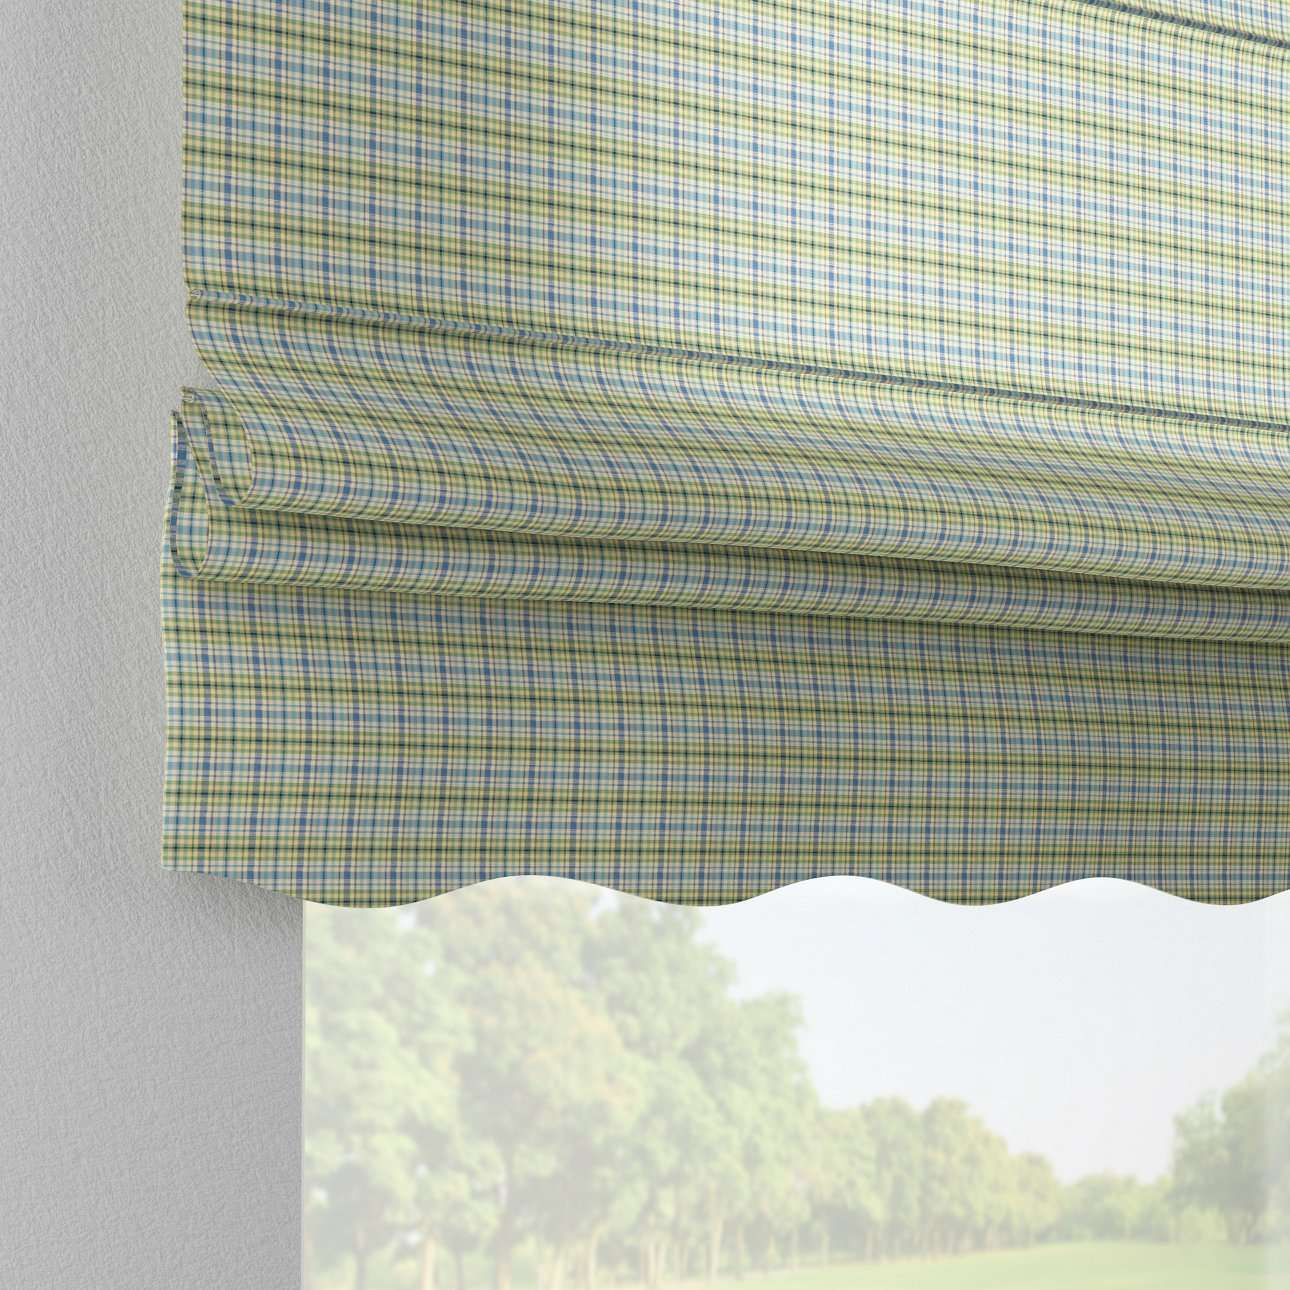 Florence roman blind  80 x 170 cm (31.5 x 67 inch) in collection Bristol, fabric: 126-69